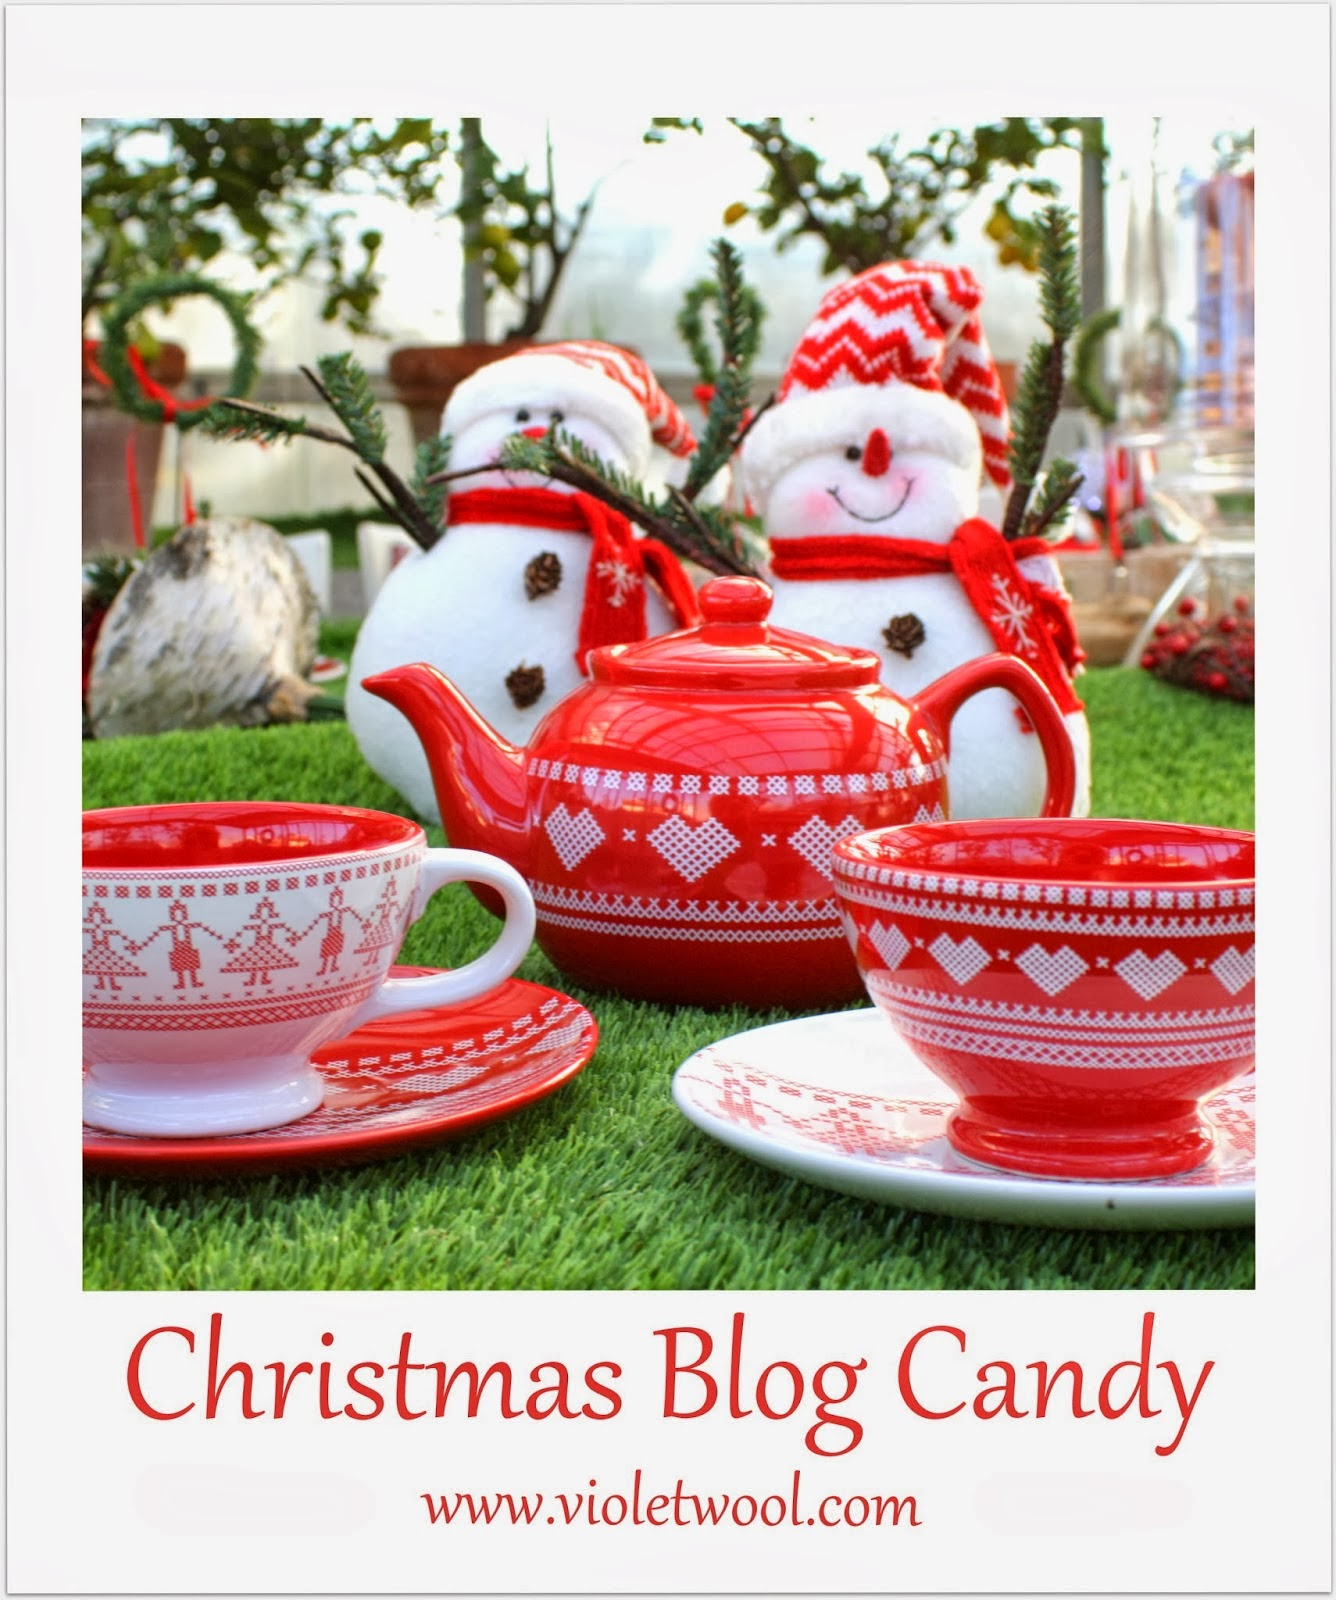 scad 20.12 blogcandy